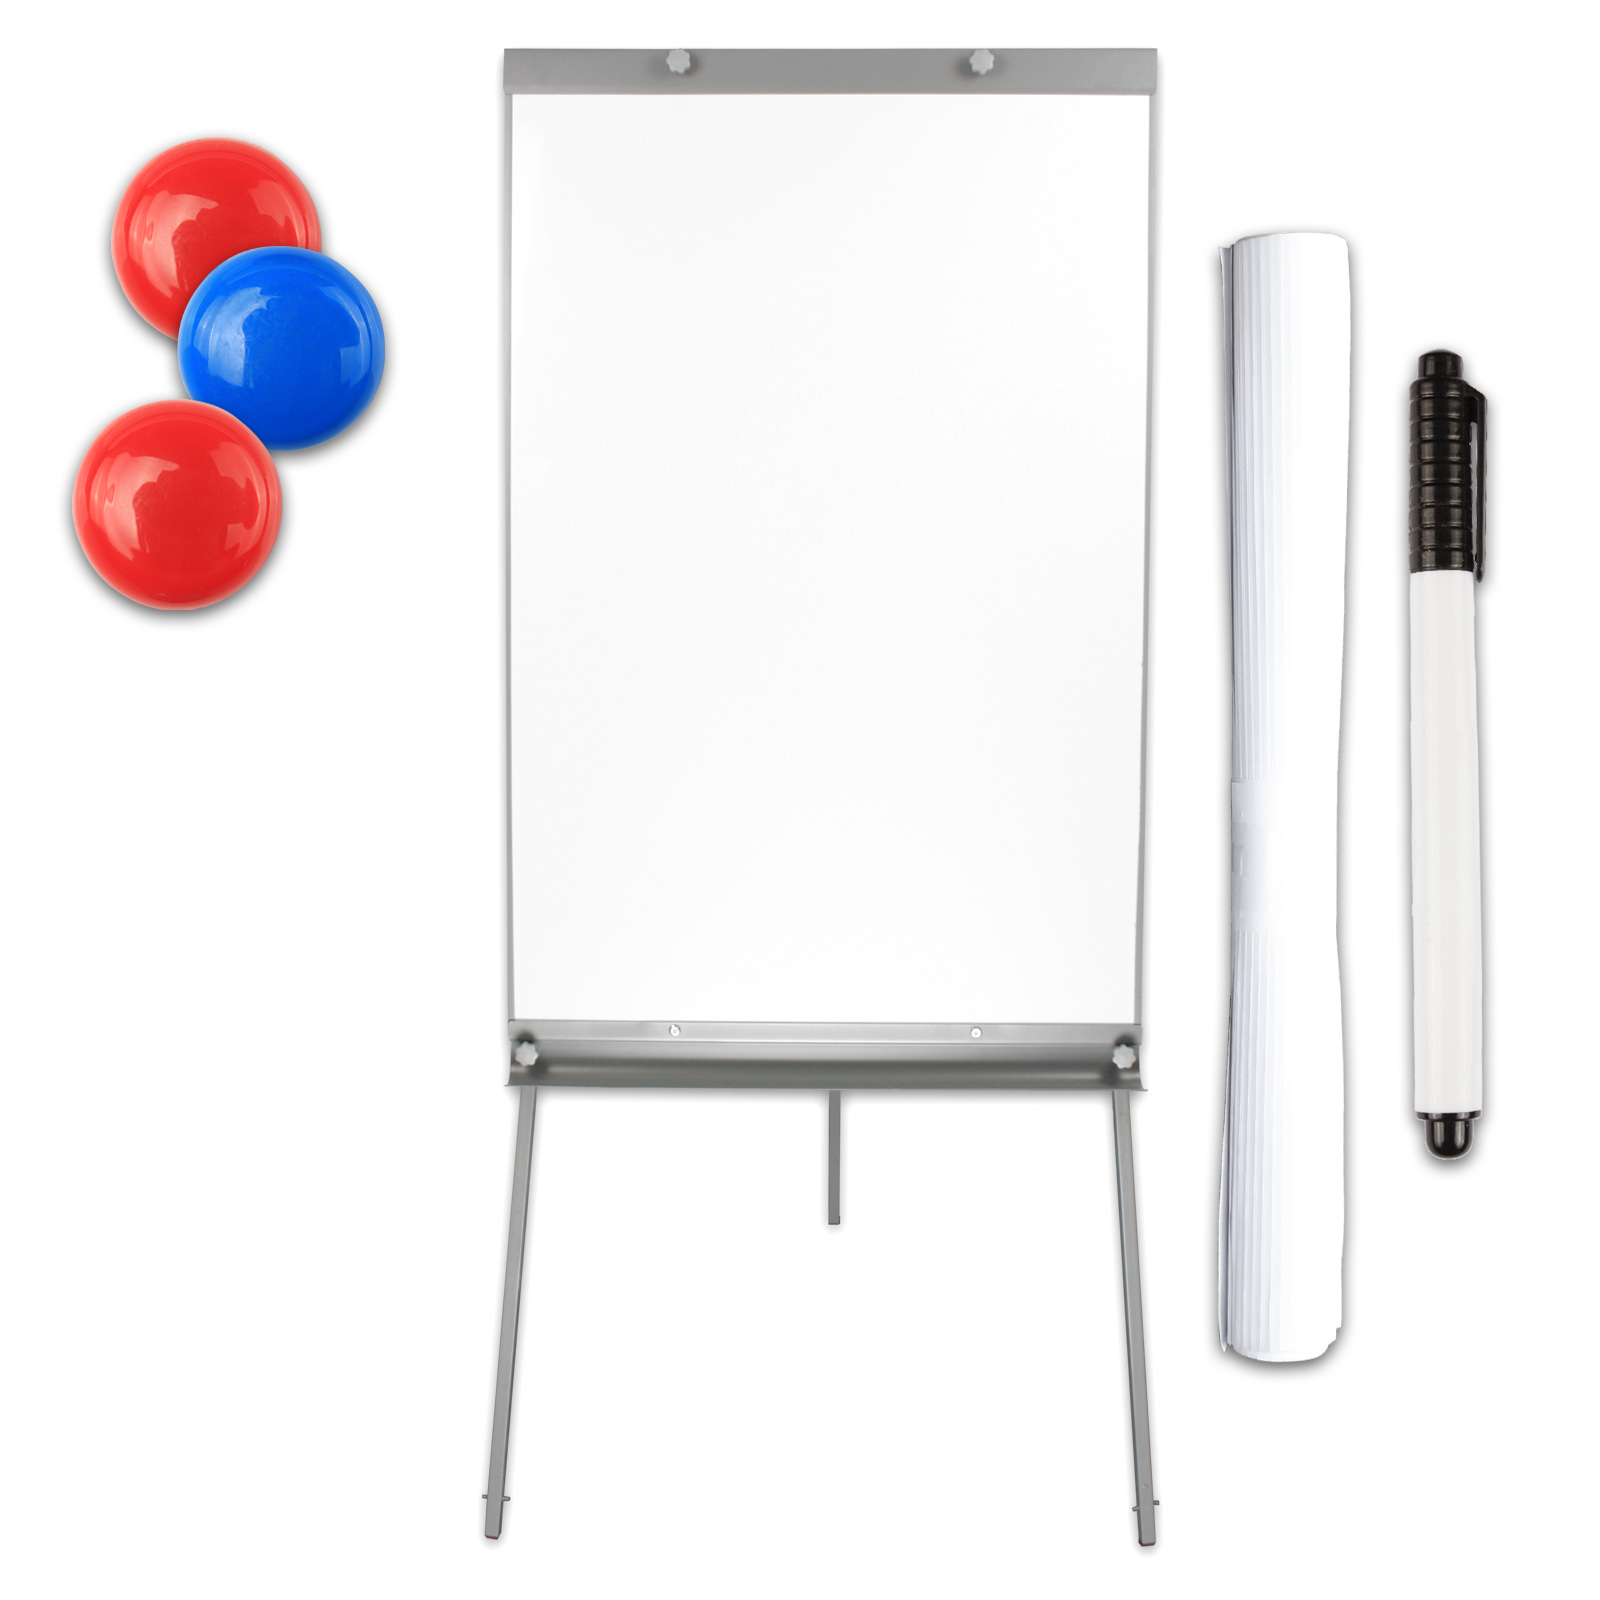 flipchart whiteboard magnetisch h henverstellbar auf rollen mobil oder einfach ebay. Black Bedroom Furniture Sets. Home Design Ideas